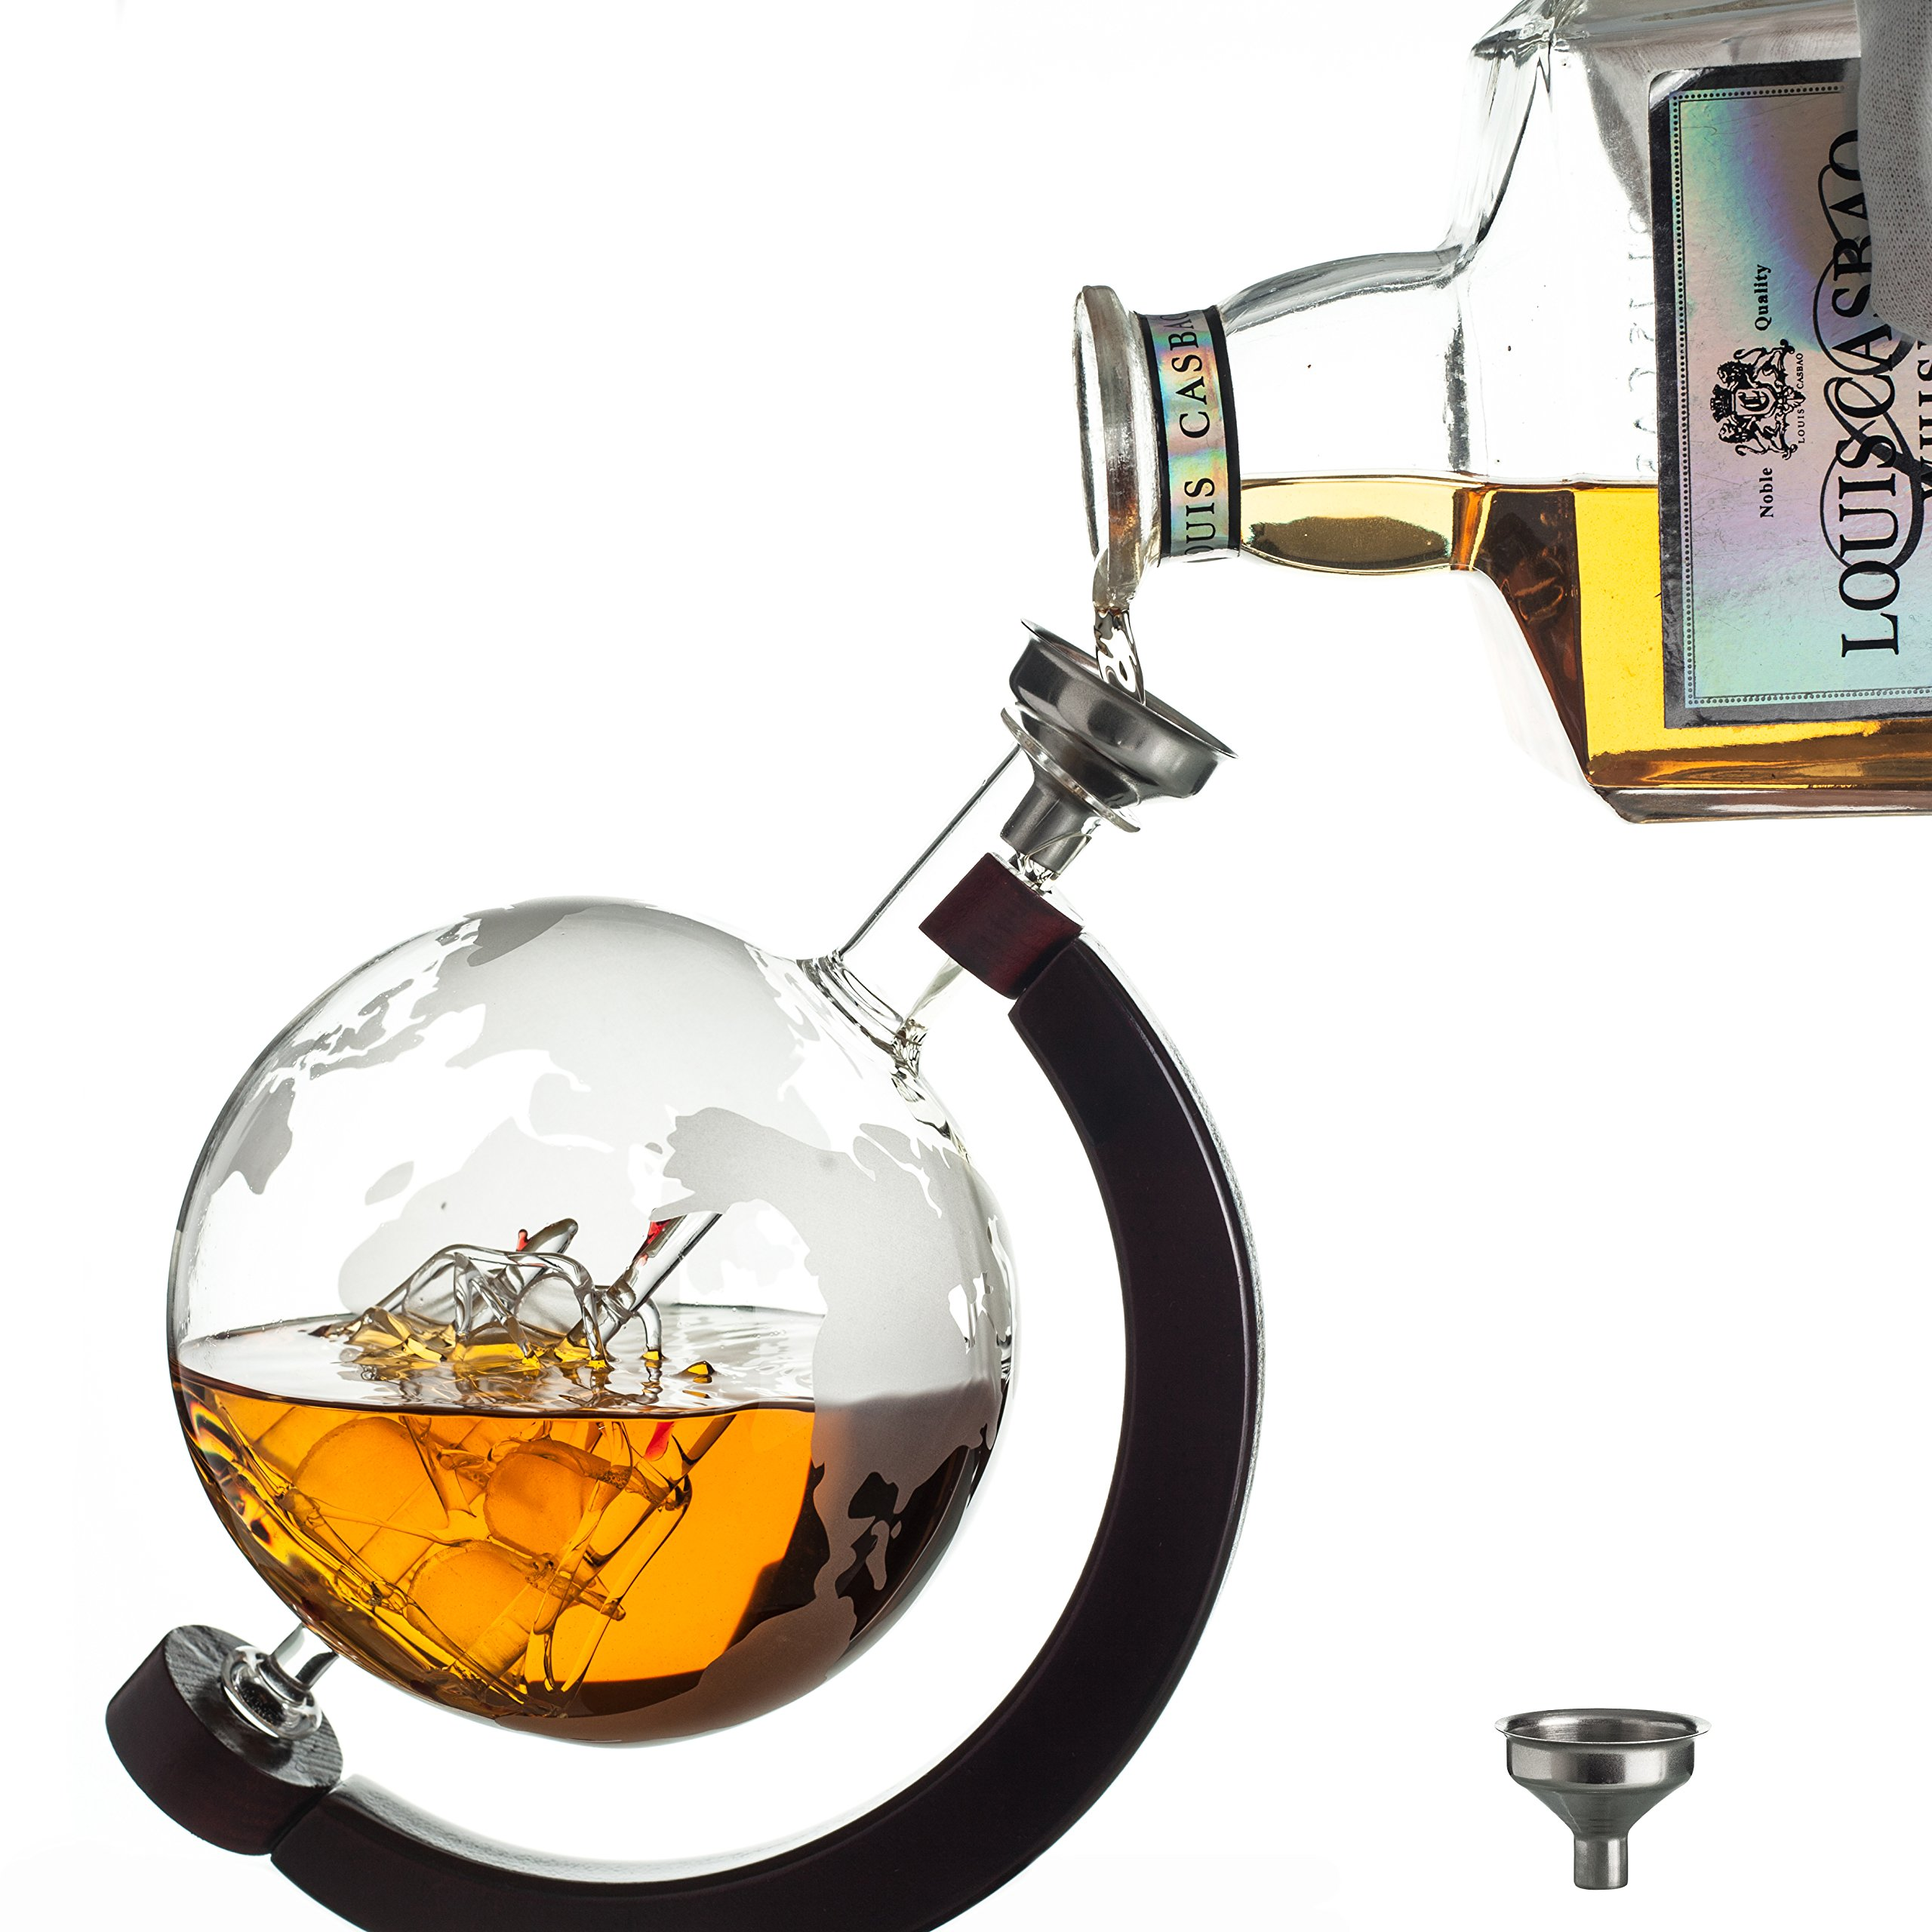 Whiskey Globe Decanter with Antique Dark Finished Wood Stand Bar Funnel 850ml Perfect Gift Set Scotch Liquor Bourbon Wine Vodka by ERAVINO (Image #2)